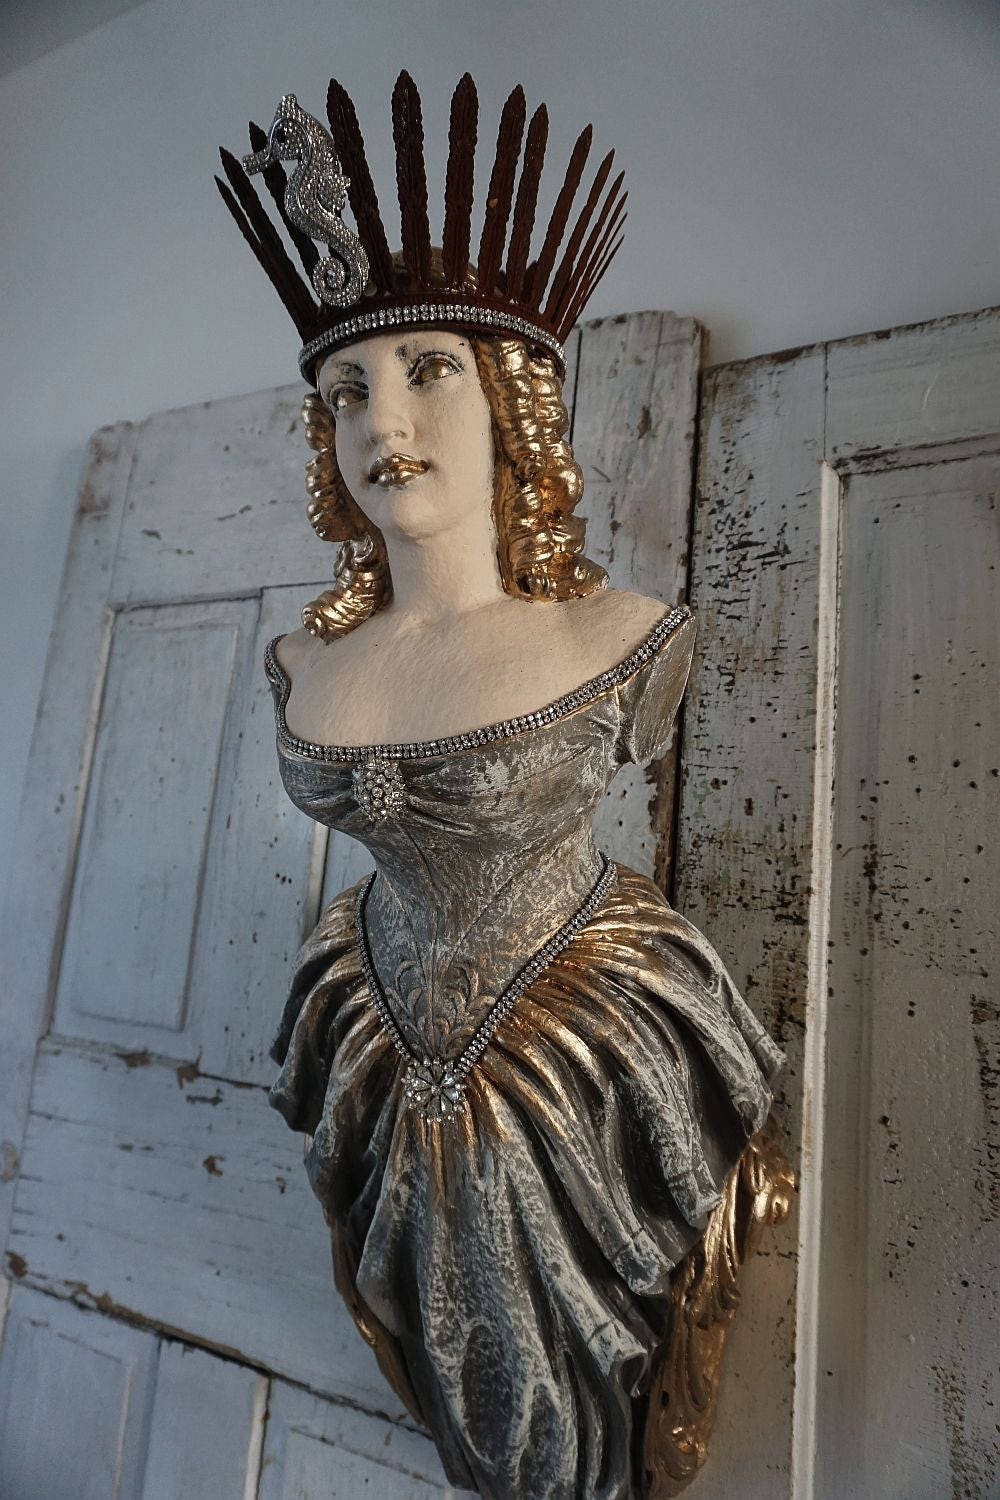 Ship Figurehead Lady Statue Wall Hanging Nautical Figure Head